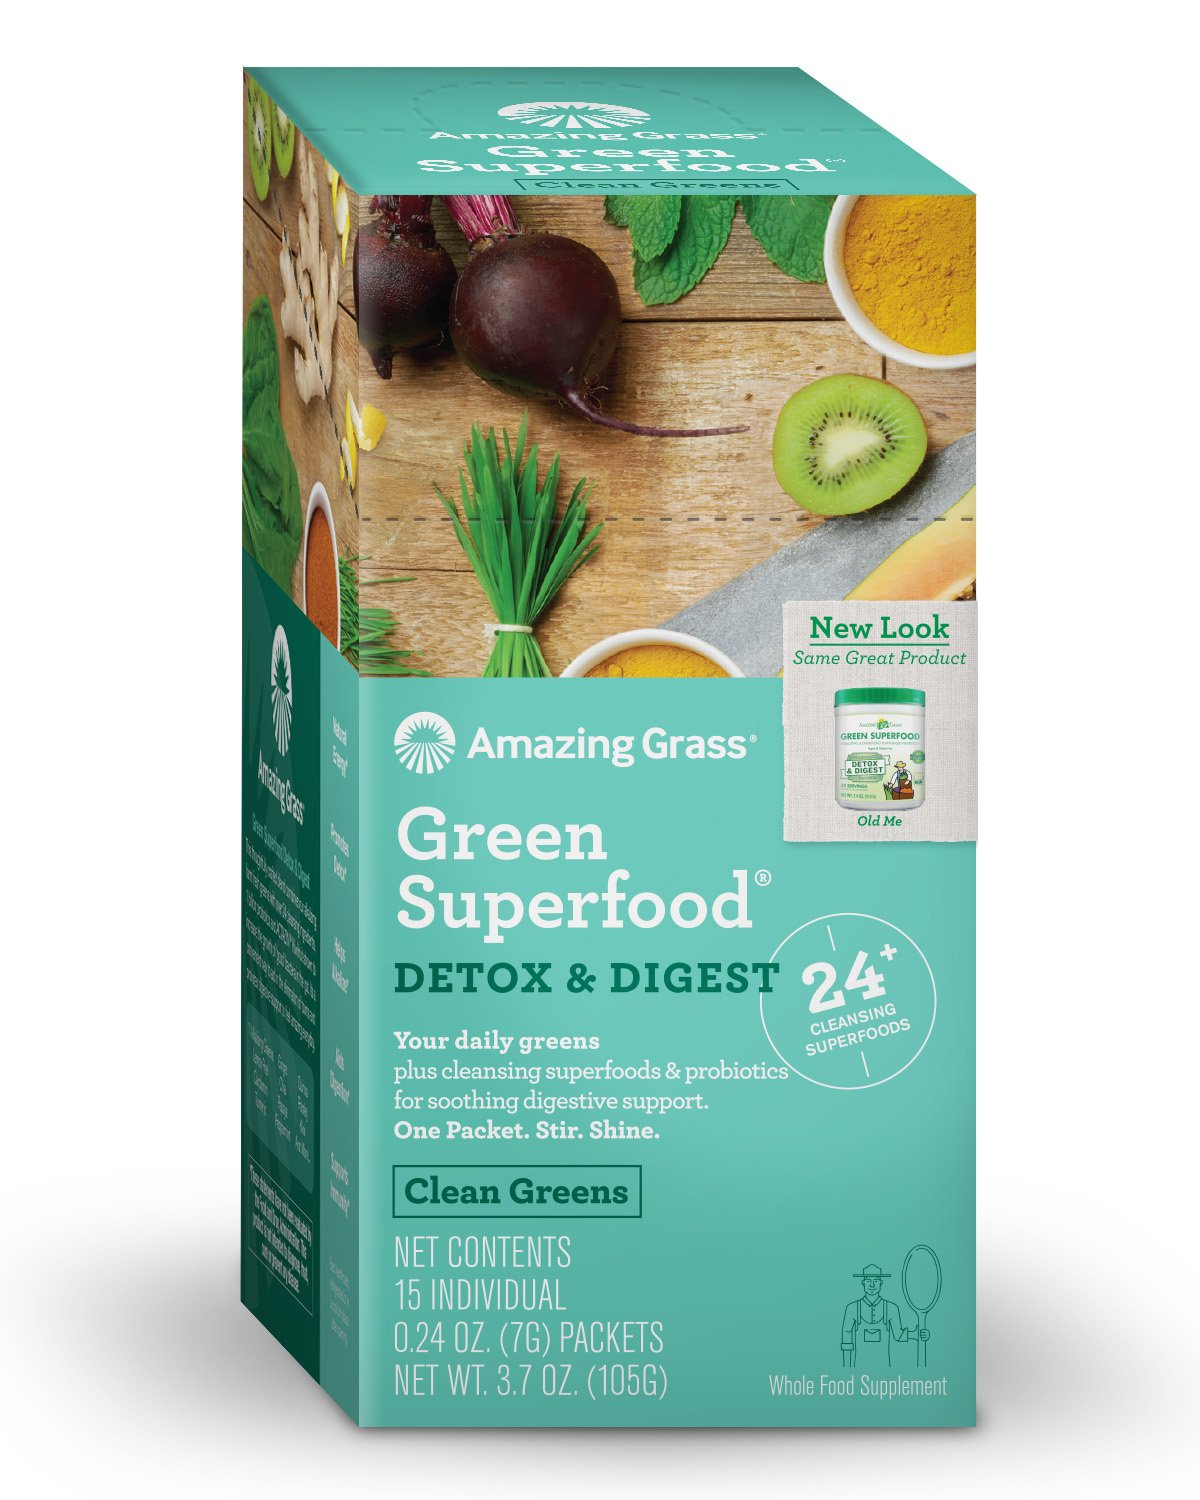 Amazing Grass Green Superfood Detox & Digest Organic Powder with Wheat Grass and Greens, 1 Billion Probiotics, Flavor: Clean Greens, Box of 15 Individual